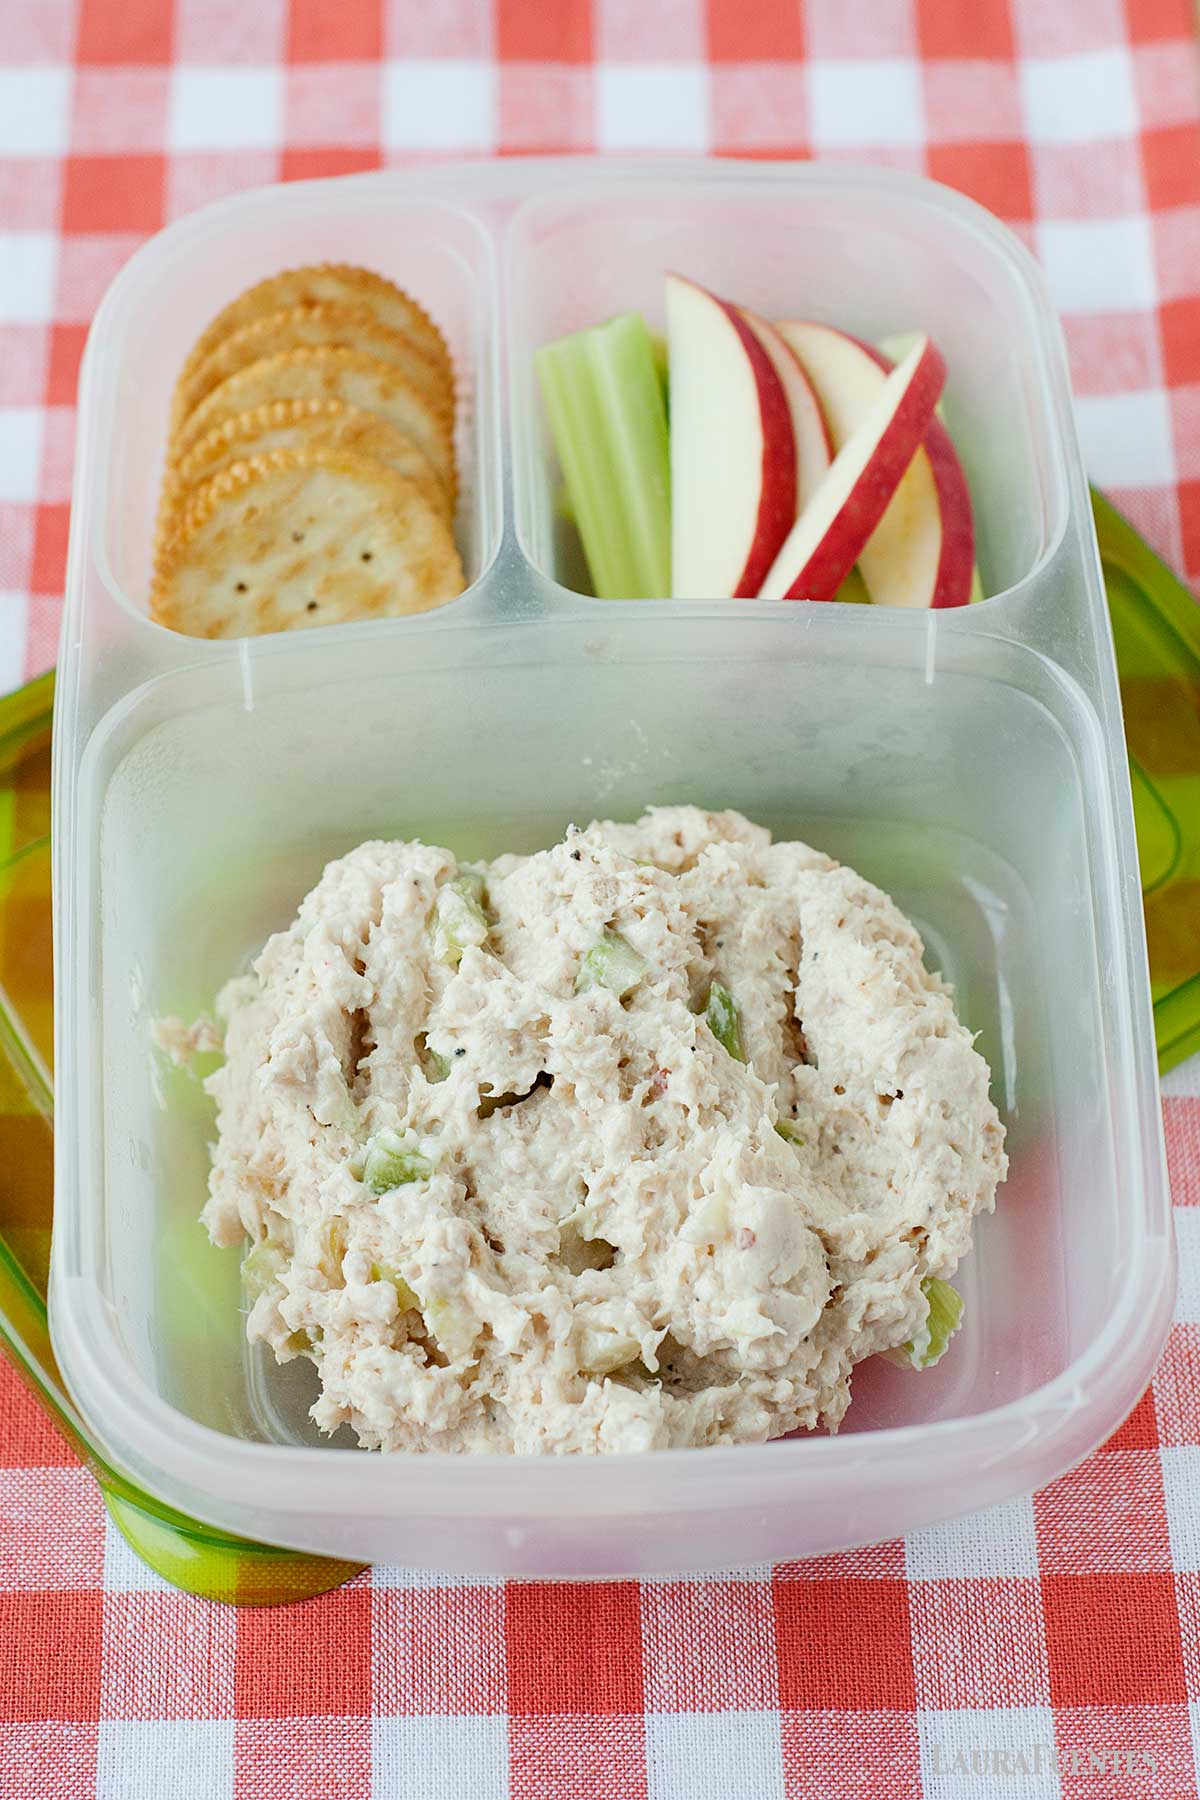 healthy southern chicken salad in a lunchbox with crackers, celery, and sliced apples.